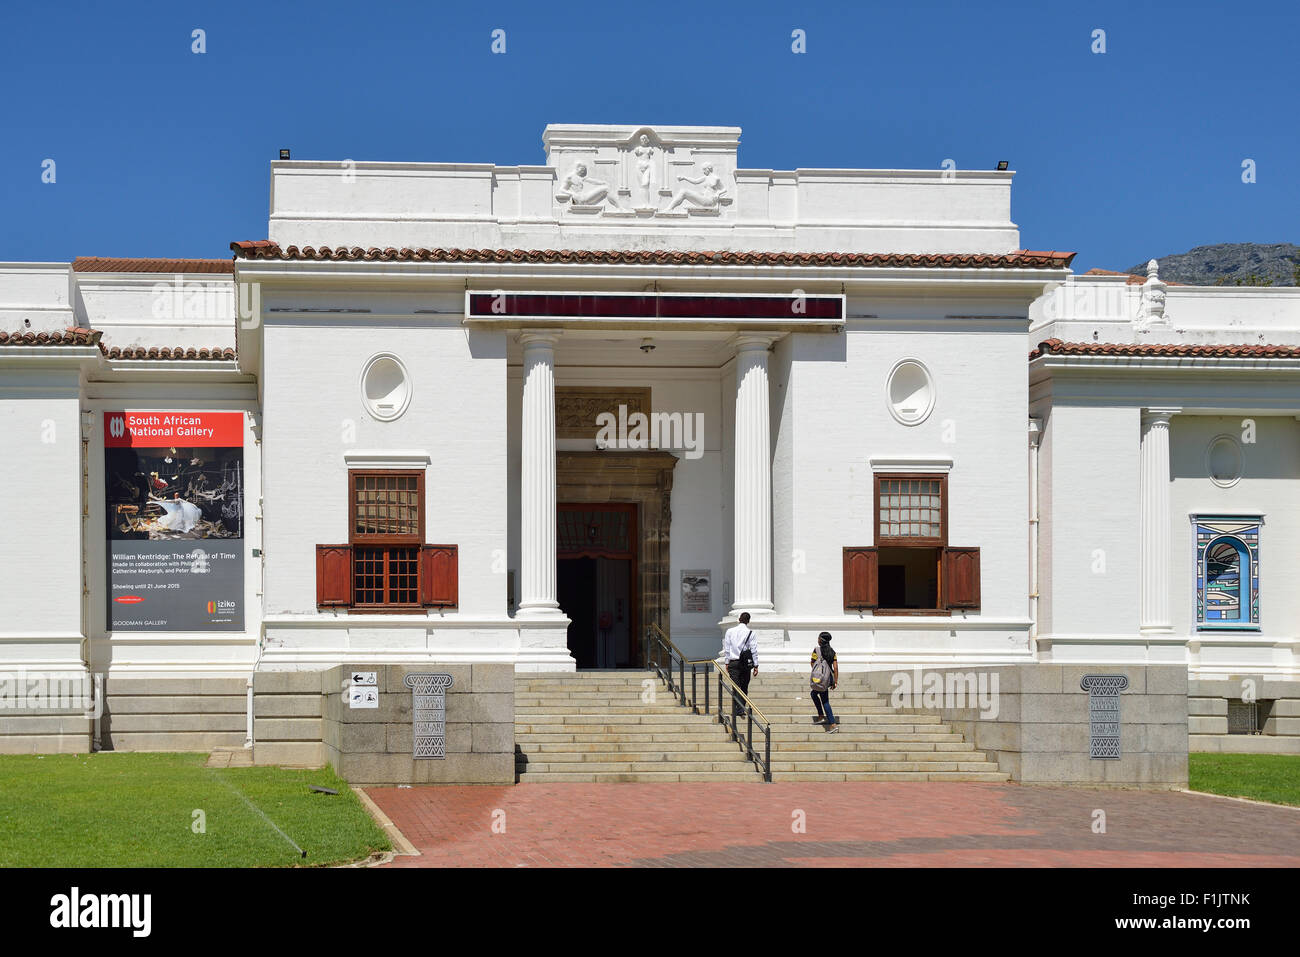 South African National Gallery, The Company's Garden, Cape Town, Western Cape Province, Republic of South Africa Stock Photo